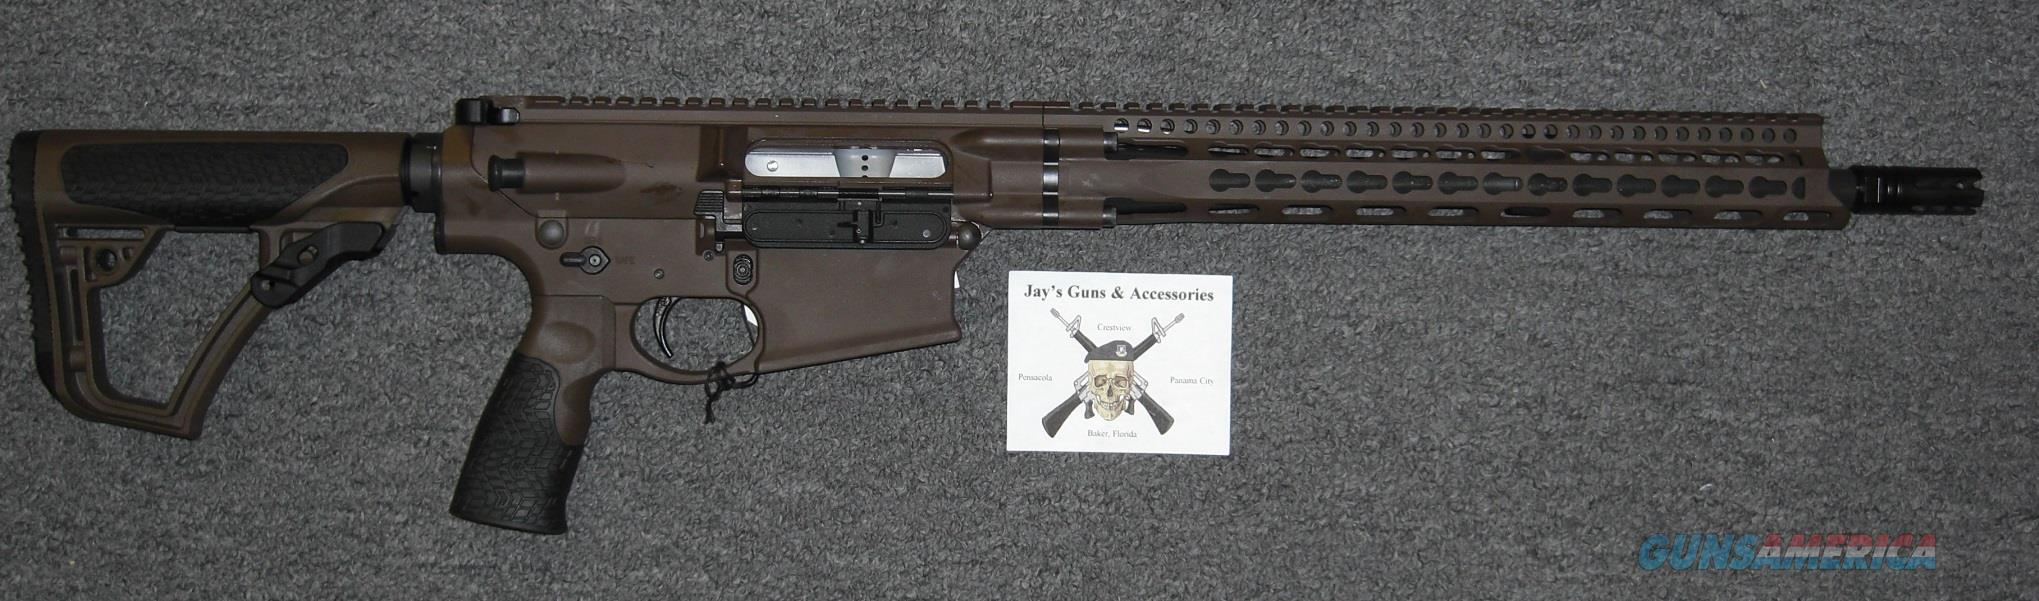 Daniel Defense DD5V1 w/Milspec Brown Finish in .308  Guns > Rifles > Daniel Defense > Complete Rifles